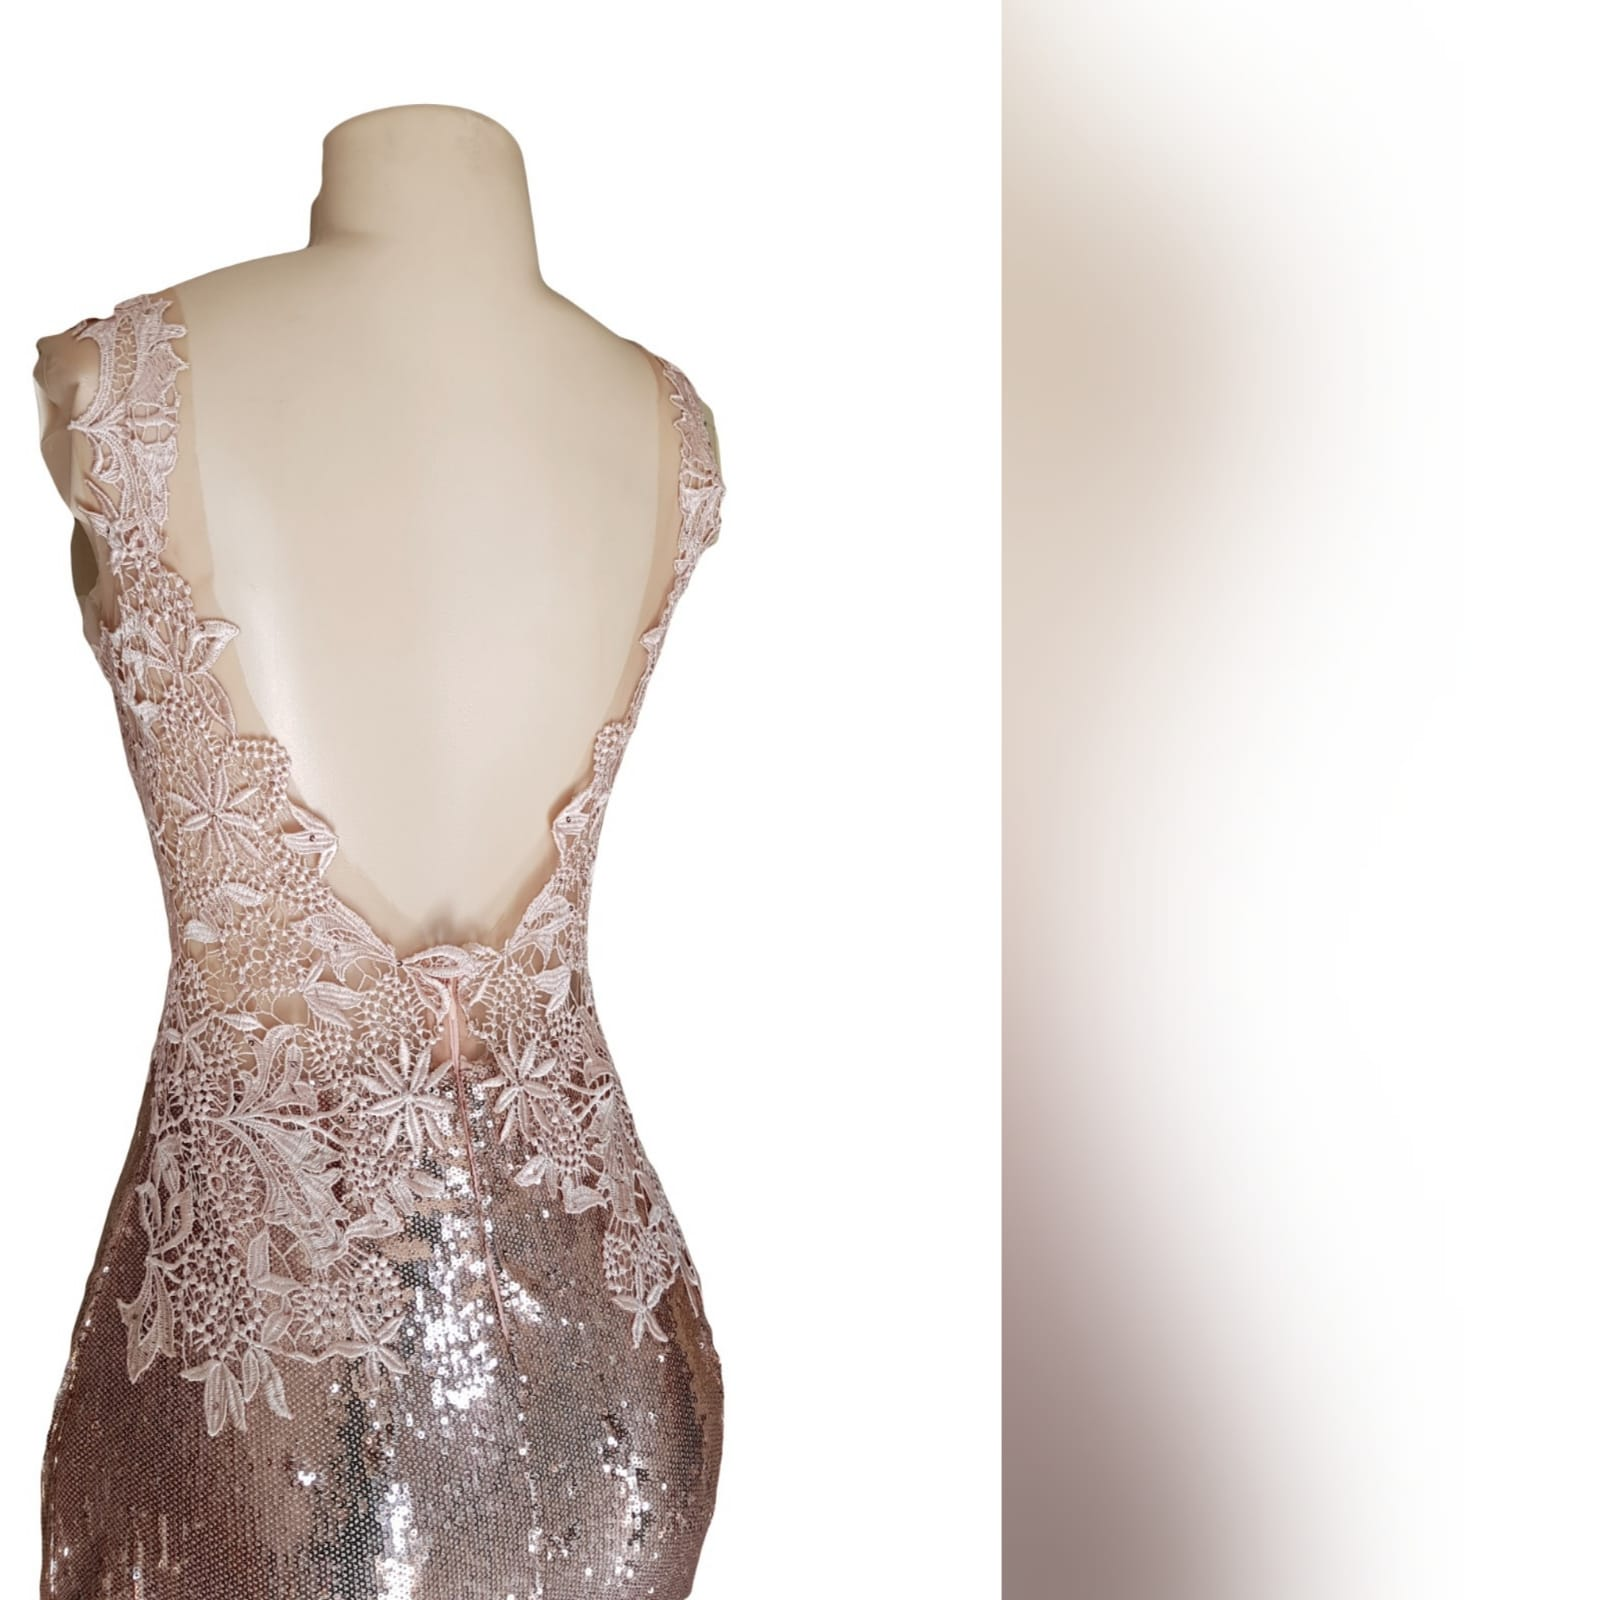 """Rose gold sequins mermaid prom dress with a lace bodice 6 <blockquote>""""make the most of yourself.... For that is all there is of you. """" ralph waldo emerson</blockquote> rose gold sequins mermaid prom dress with a lace bodice, custom made. This gorgeous gown, sparkles slightly adding a touch of drama and importance to the look. Creating an amazing effect when entering the party hall and hitting the dance floor"""